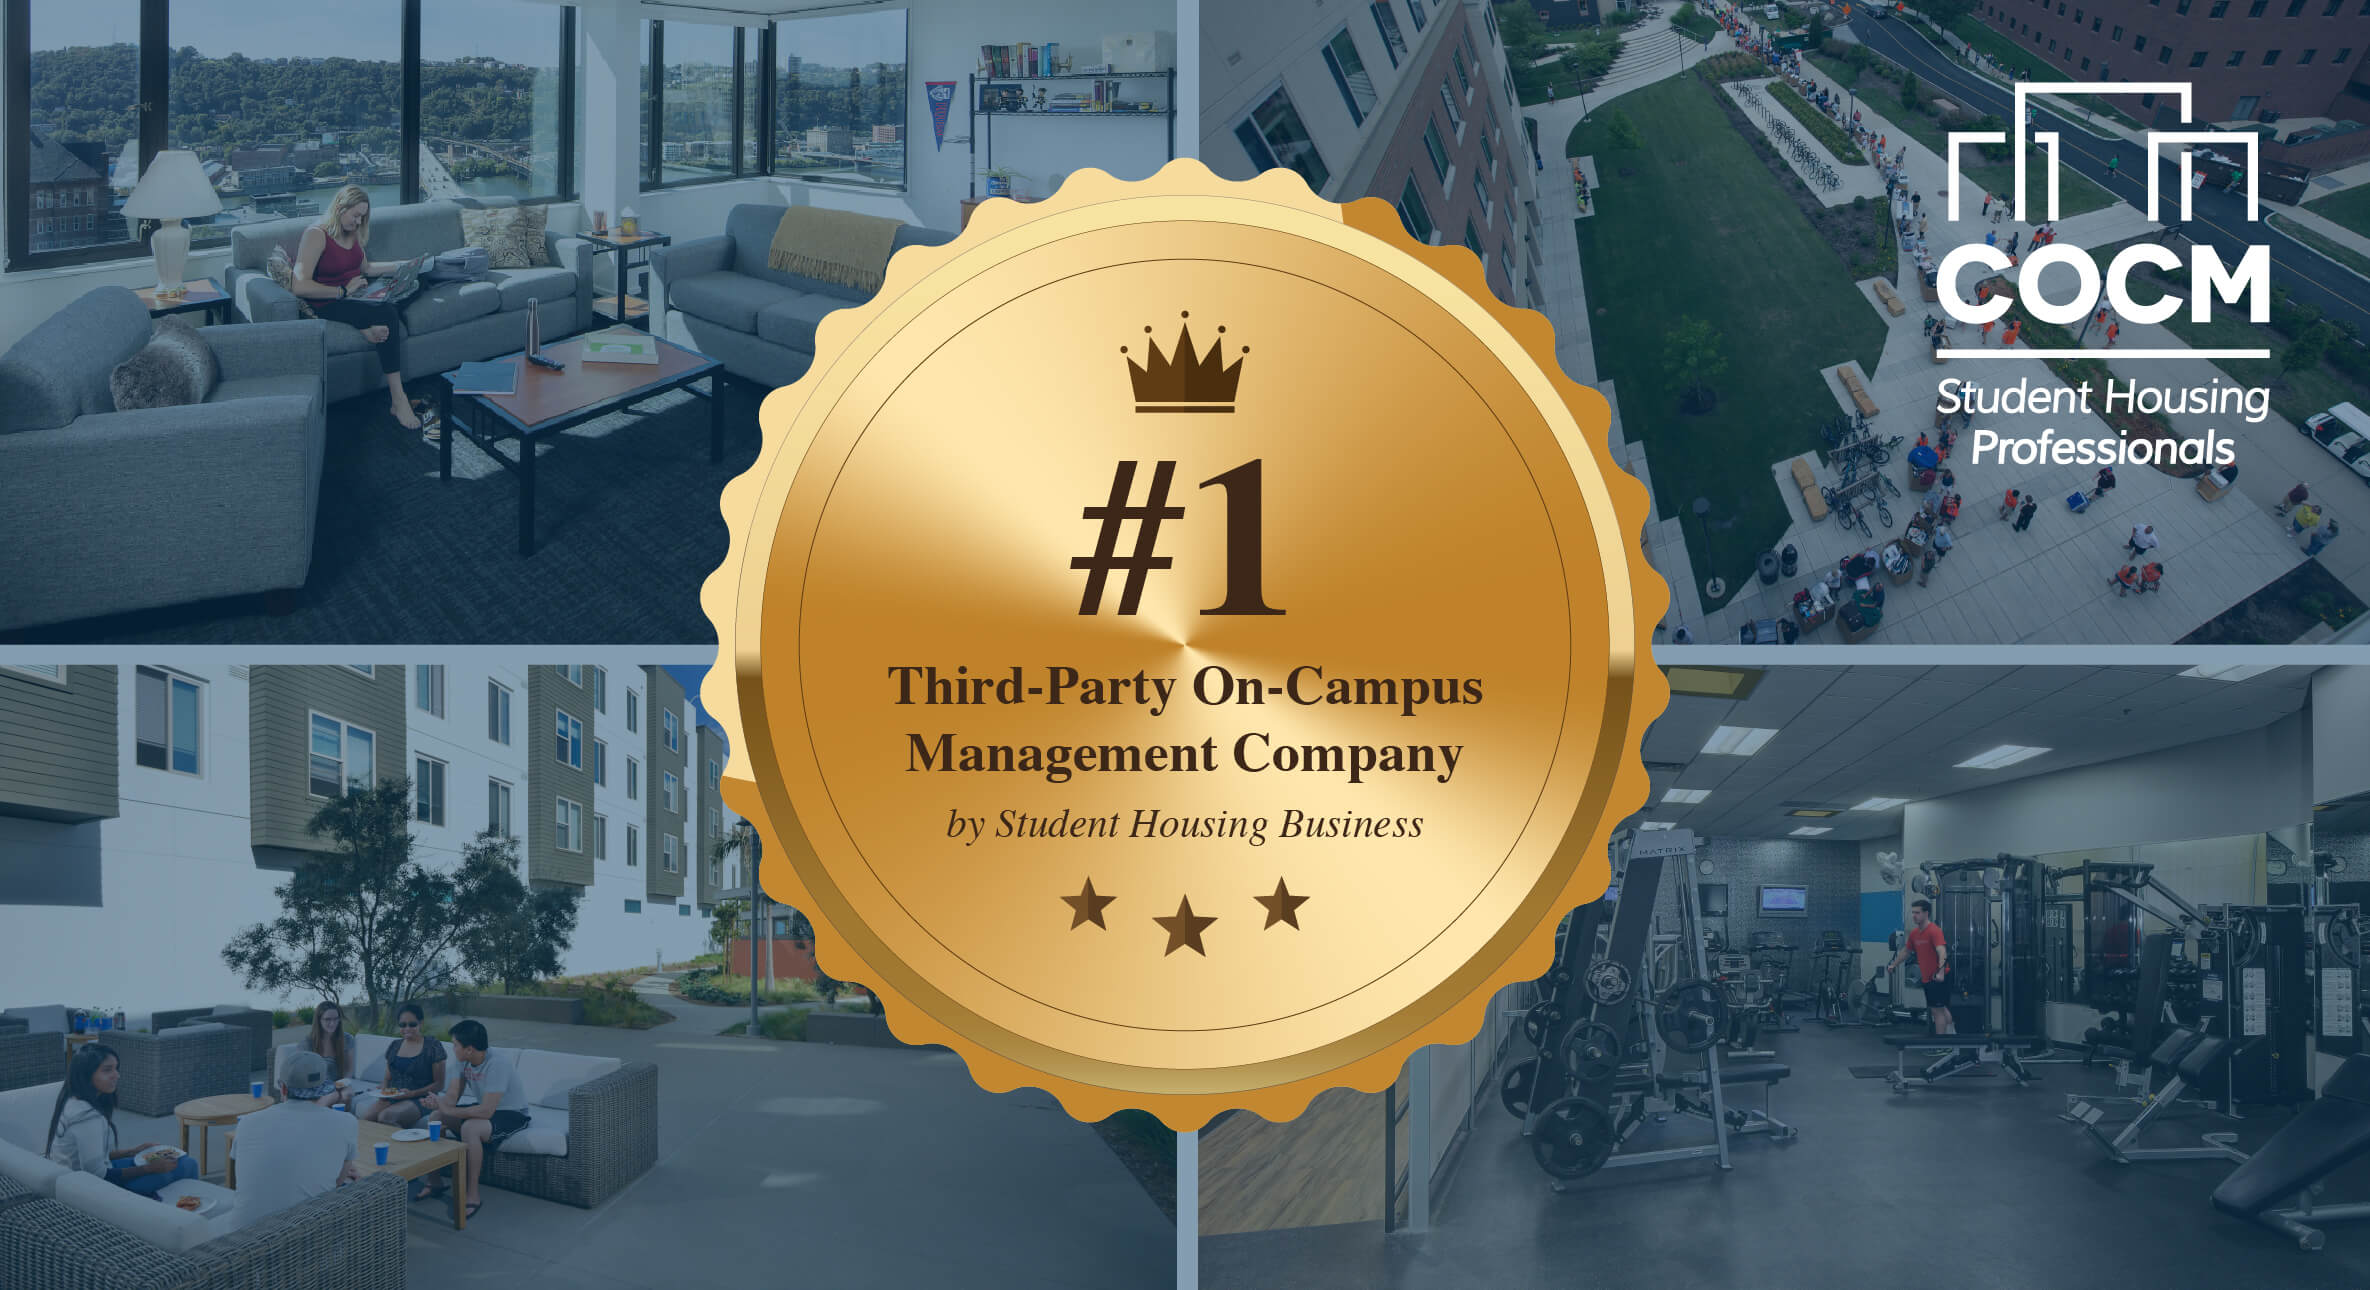 COCM Ranked #1 Third-Party On-Campus Management Company by Student Housing Business